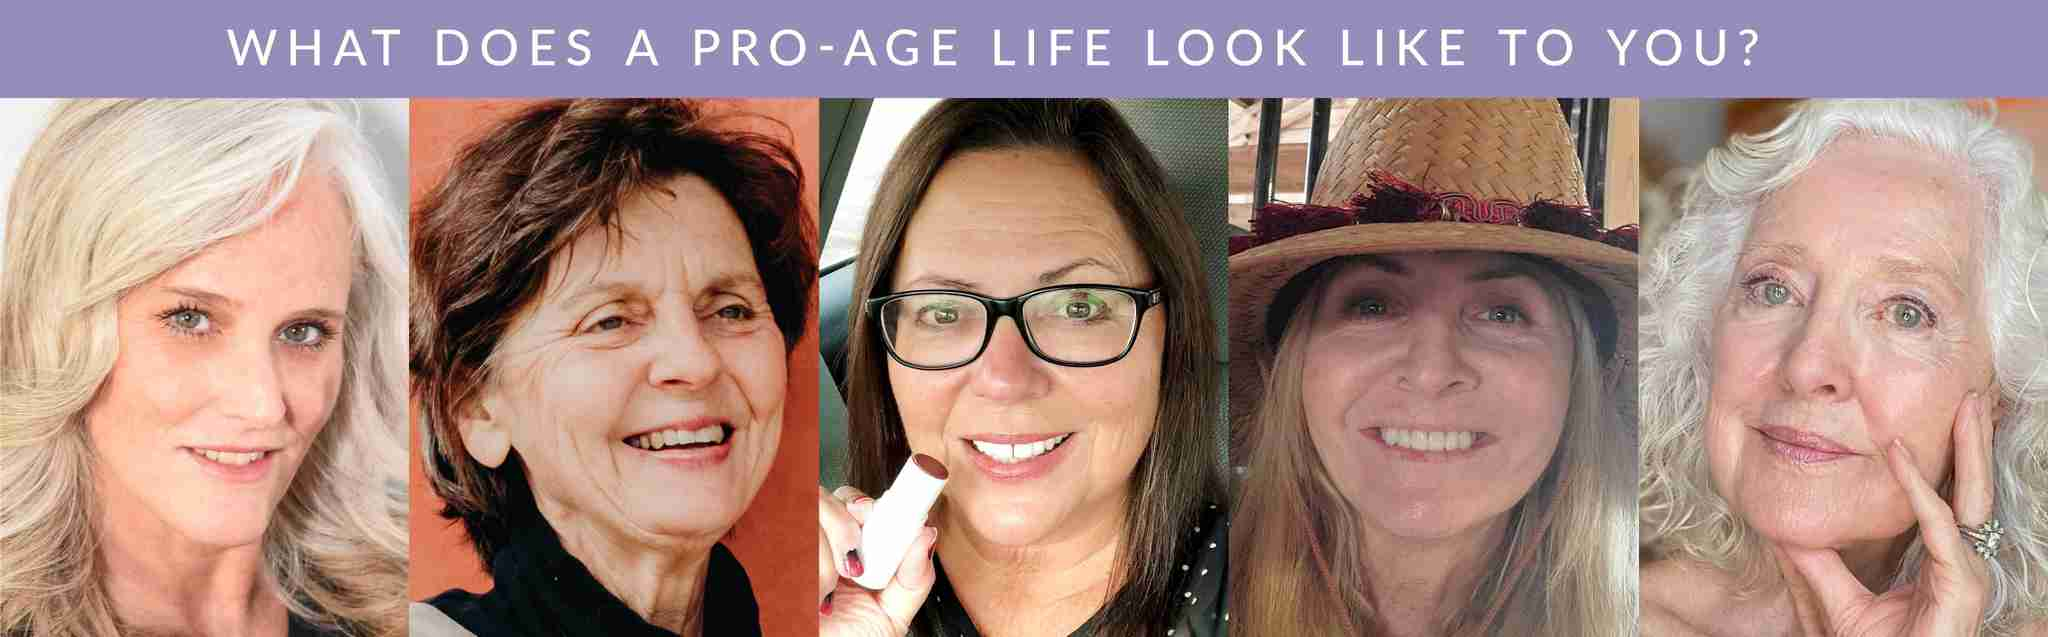 What does a Pro-age life look like to you?